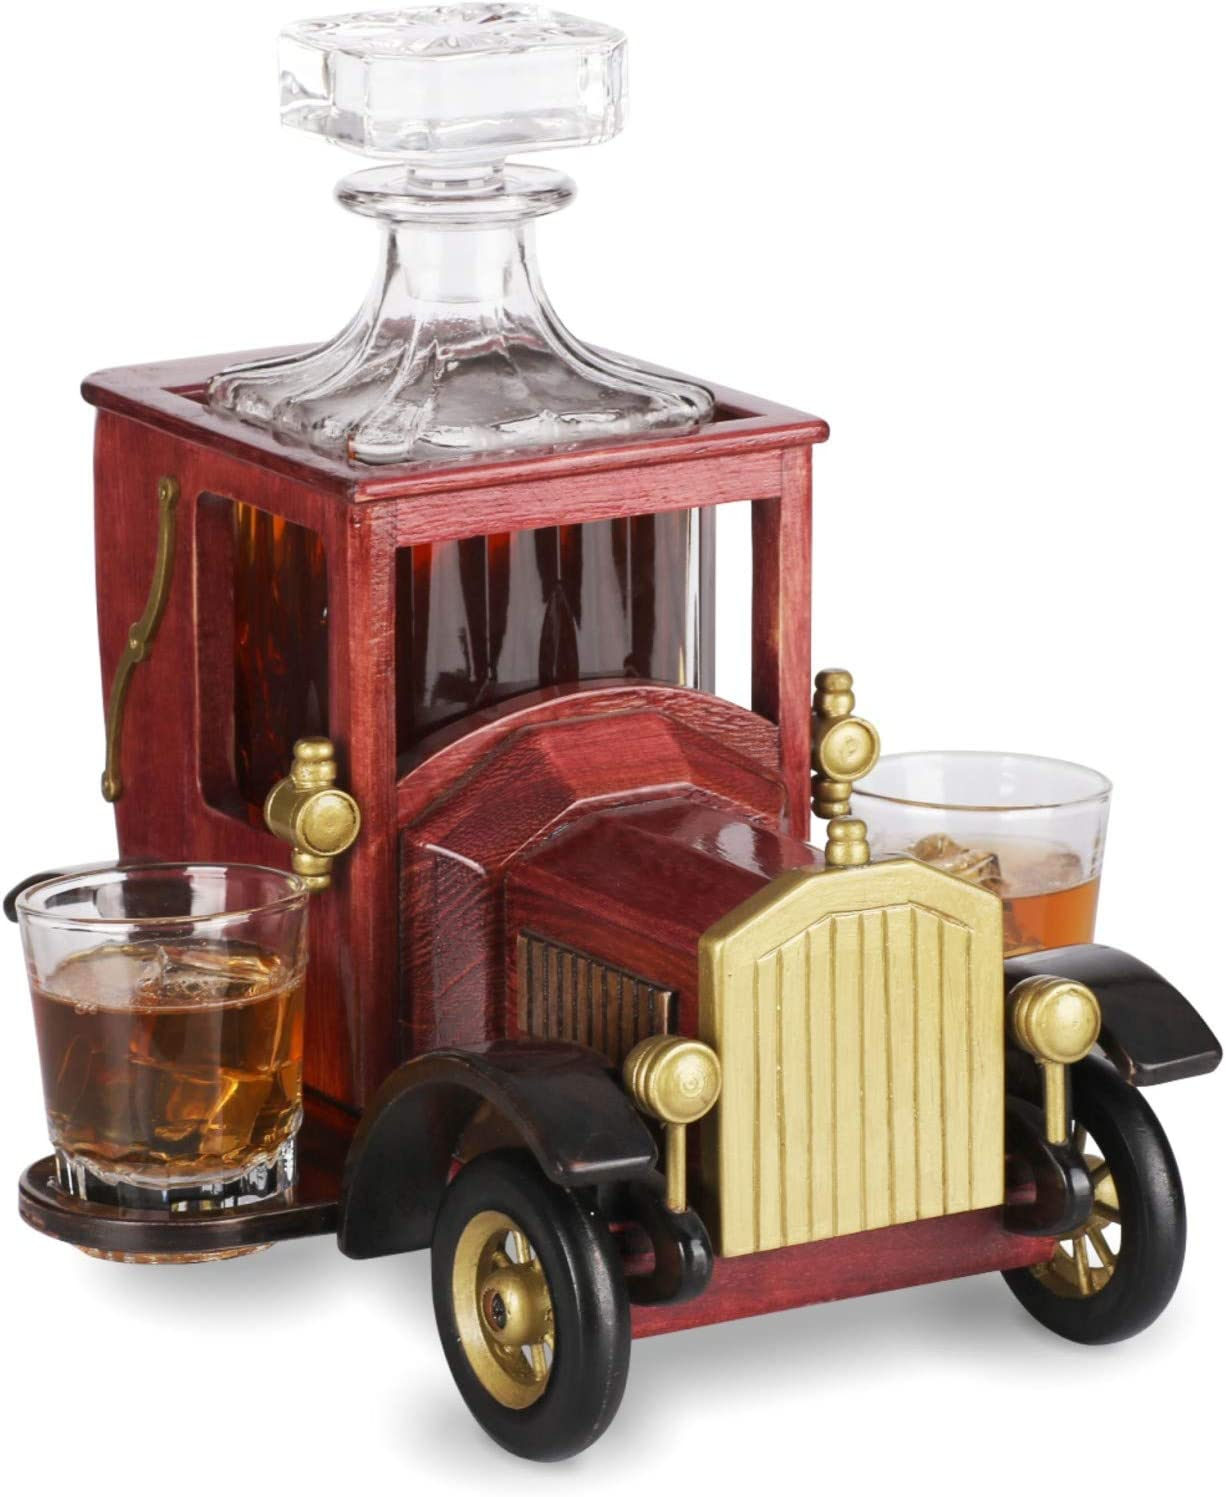 Whiskey Decanter Set NEW 2020 Gift with Crystal Glasses and Old Fashioned Vintage Car Stand - Personalized Gift Set for Men, Dad, Husband, Brother, Boss - Bar Accessories for Liquor, Scotch